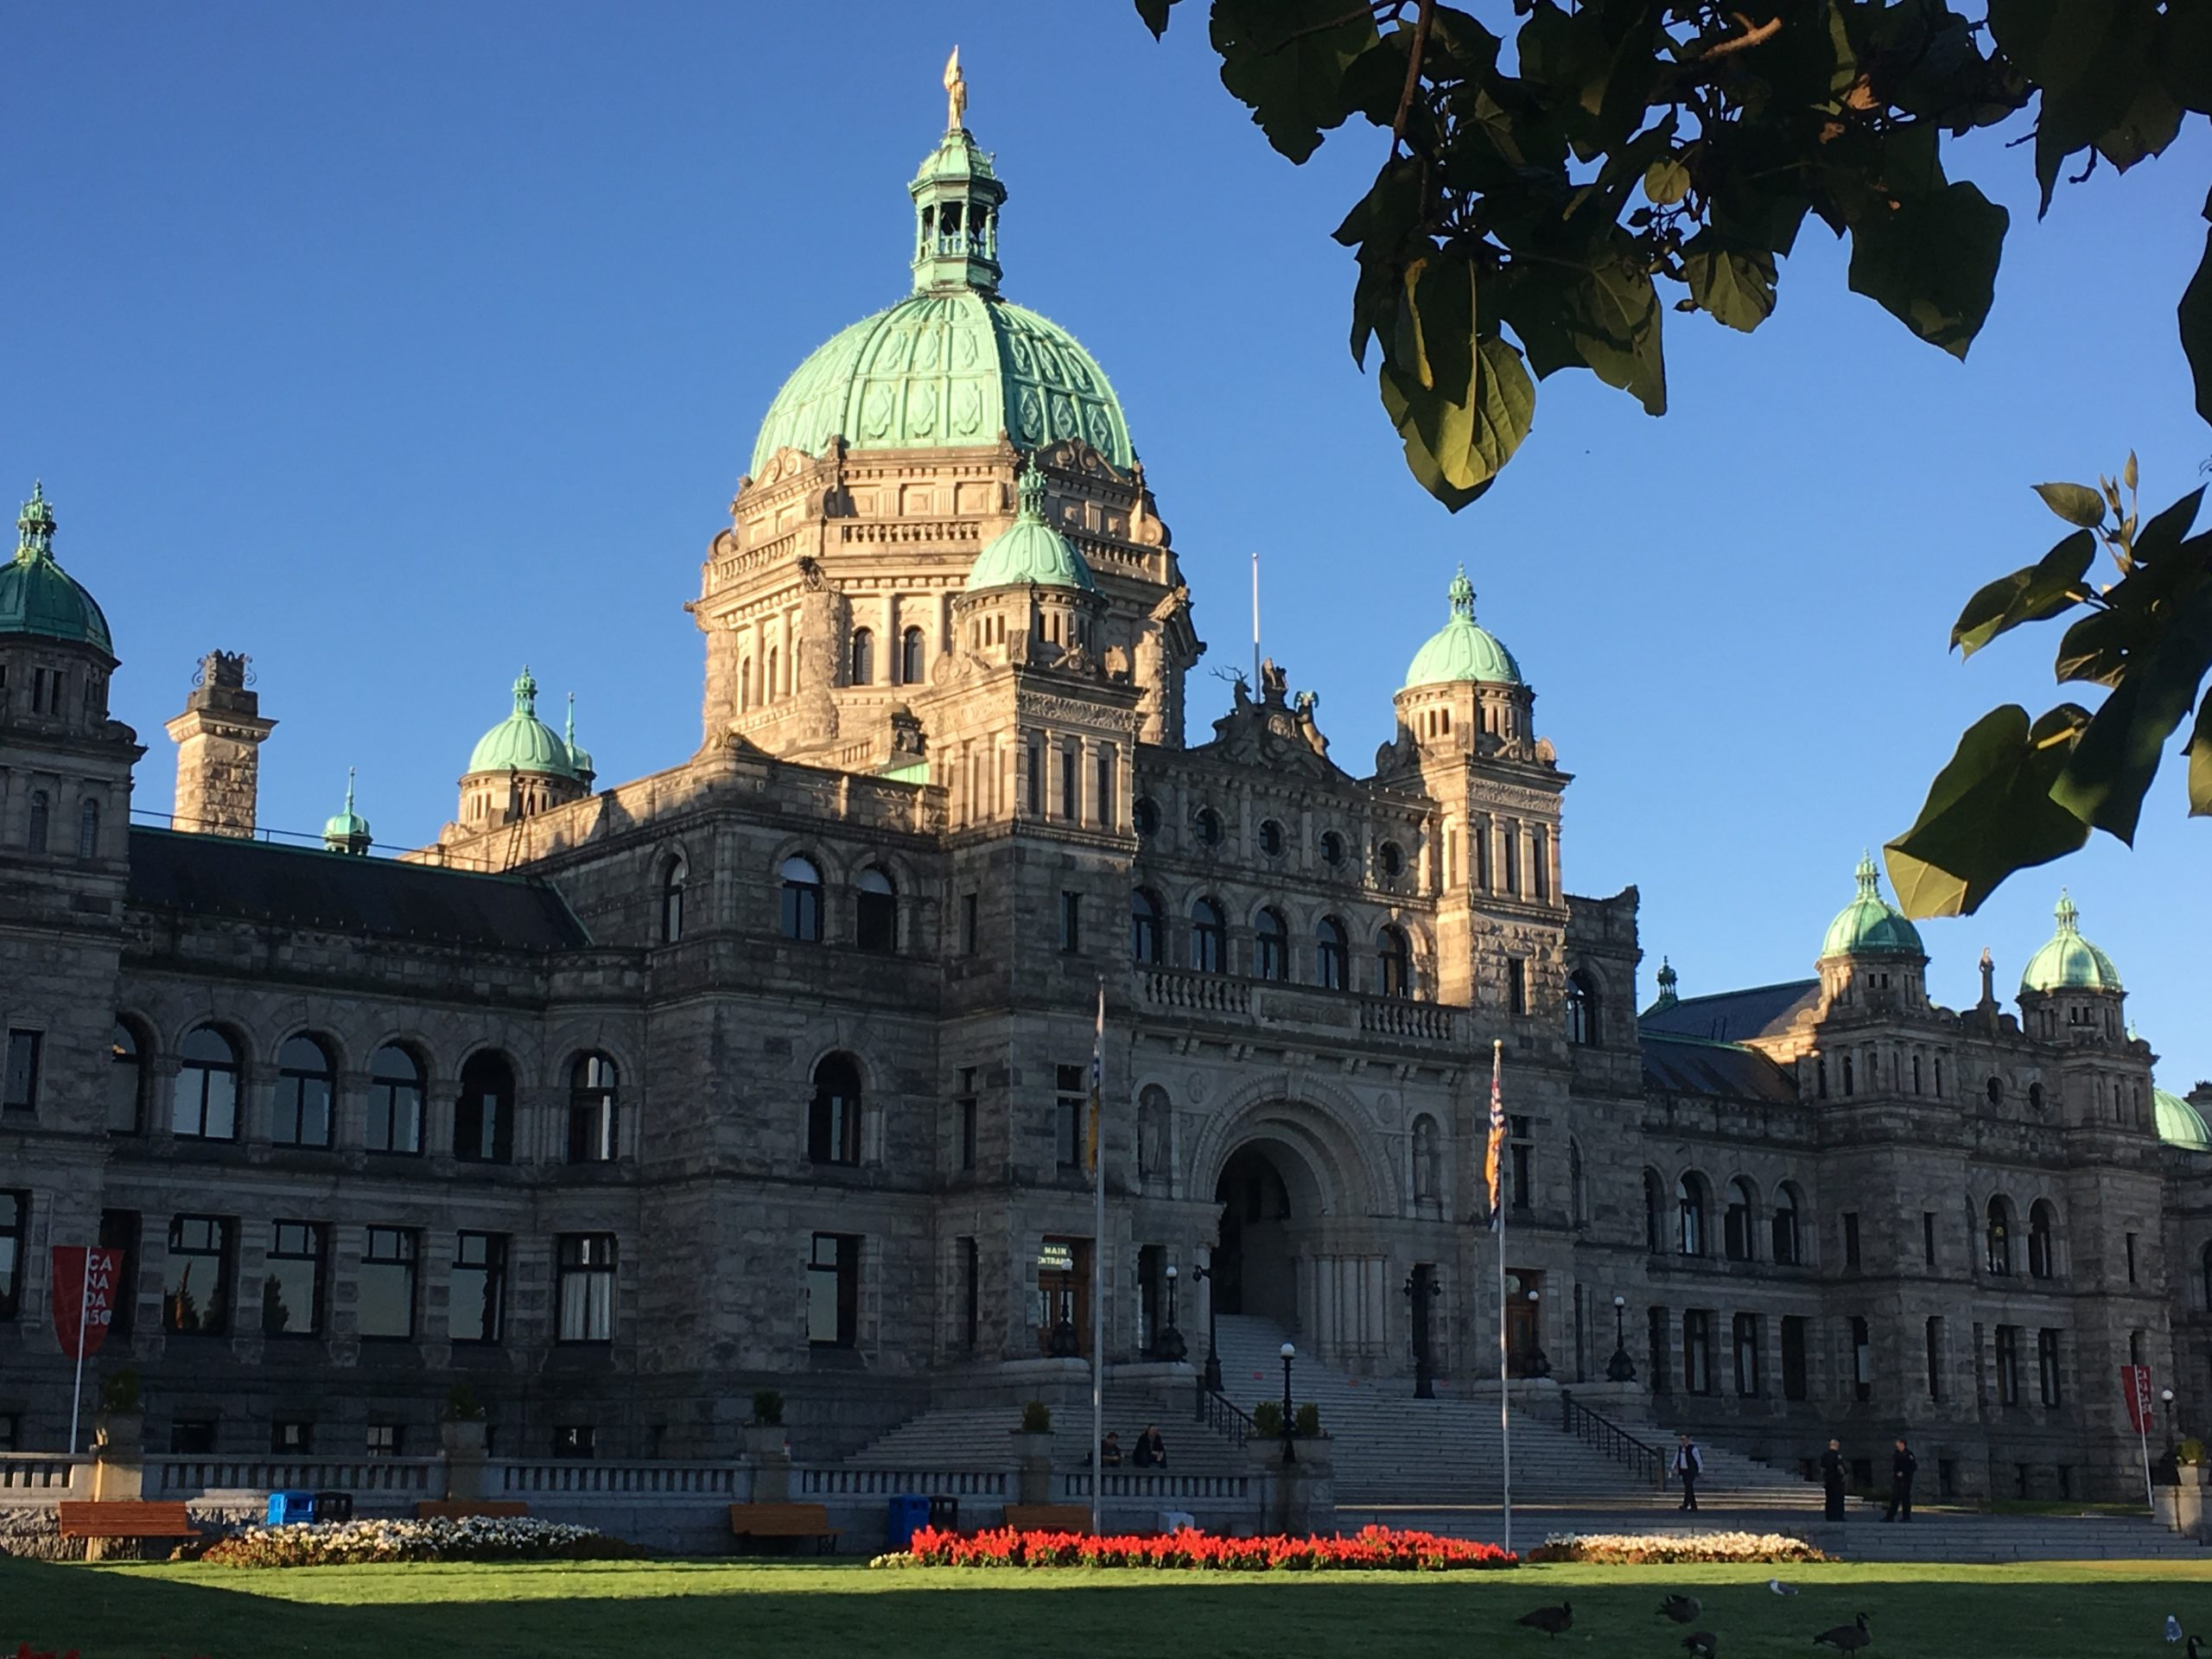 ICBA NEWS RELEASE: BC Budget – In Times of Crisis, Double Down on the Future